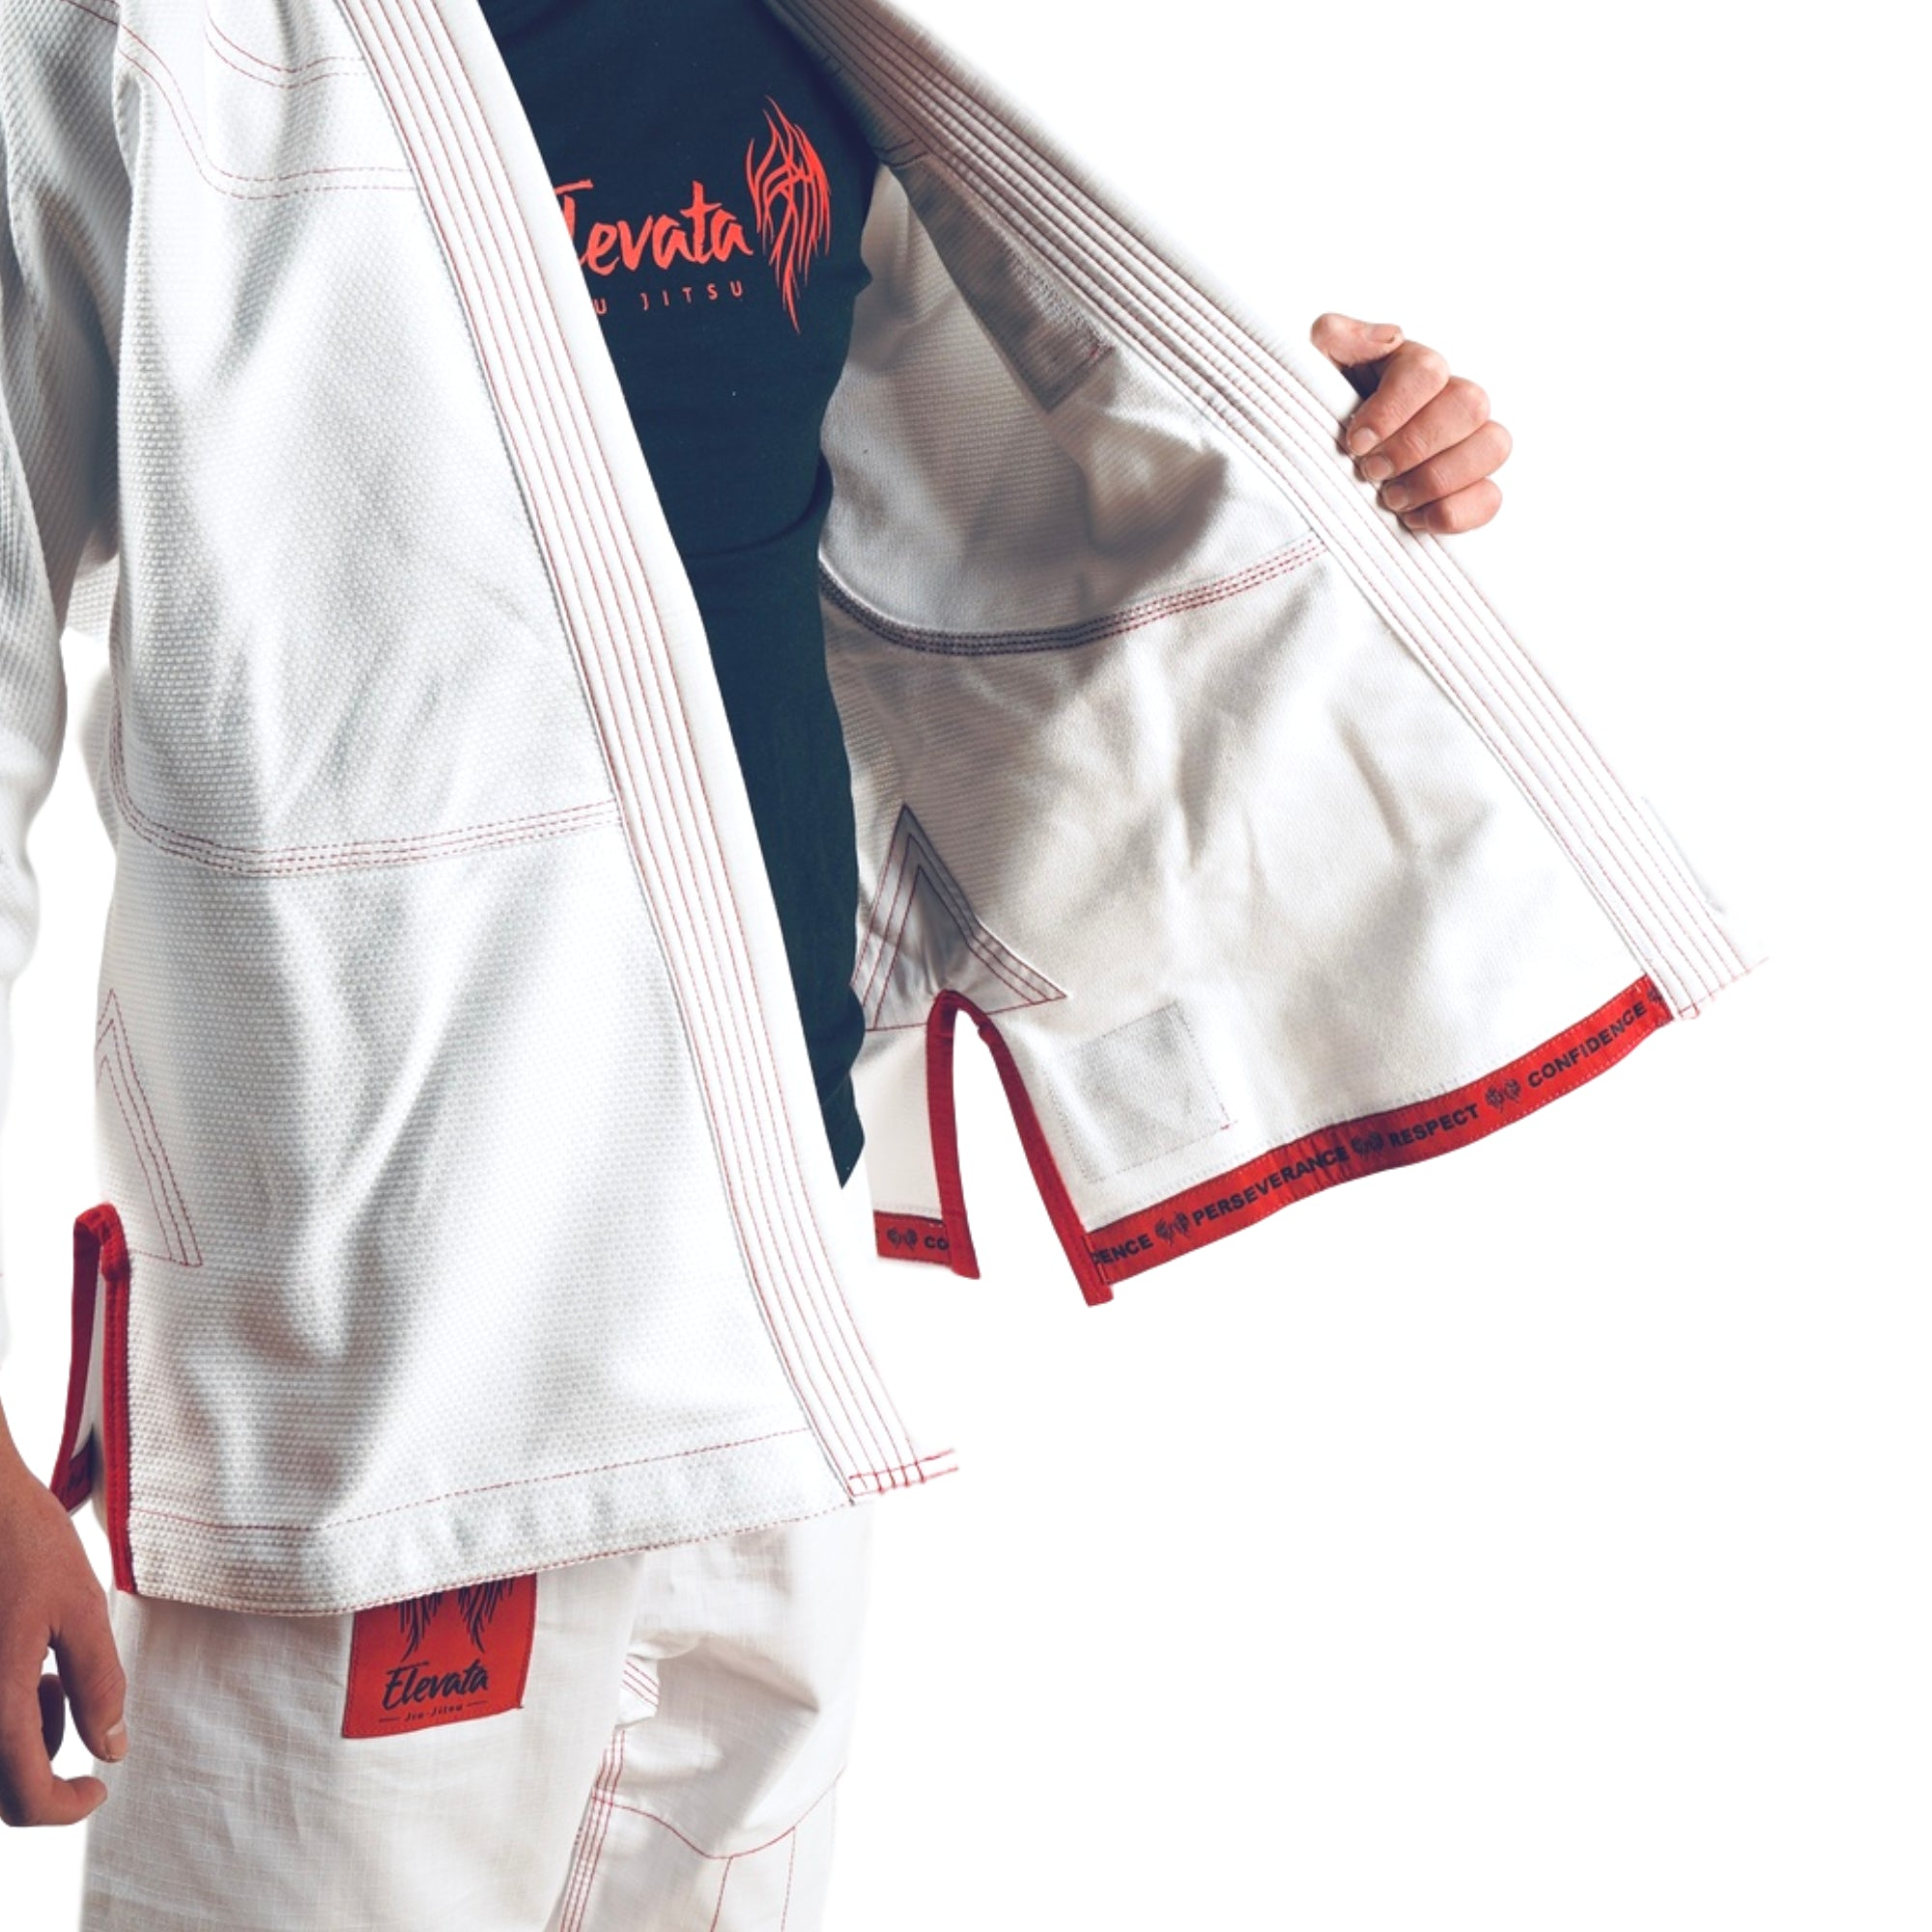 V1 - The Original White Elevata Gi - Kids